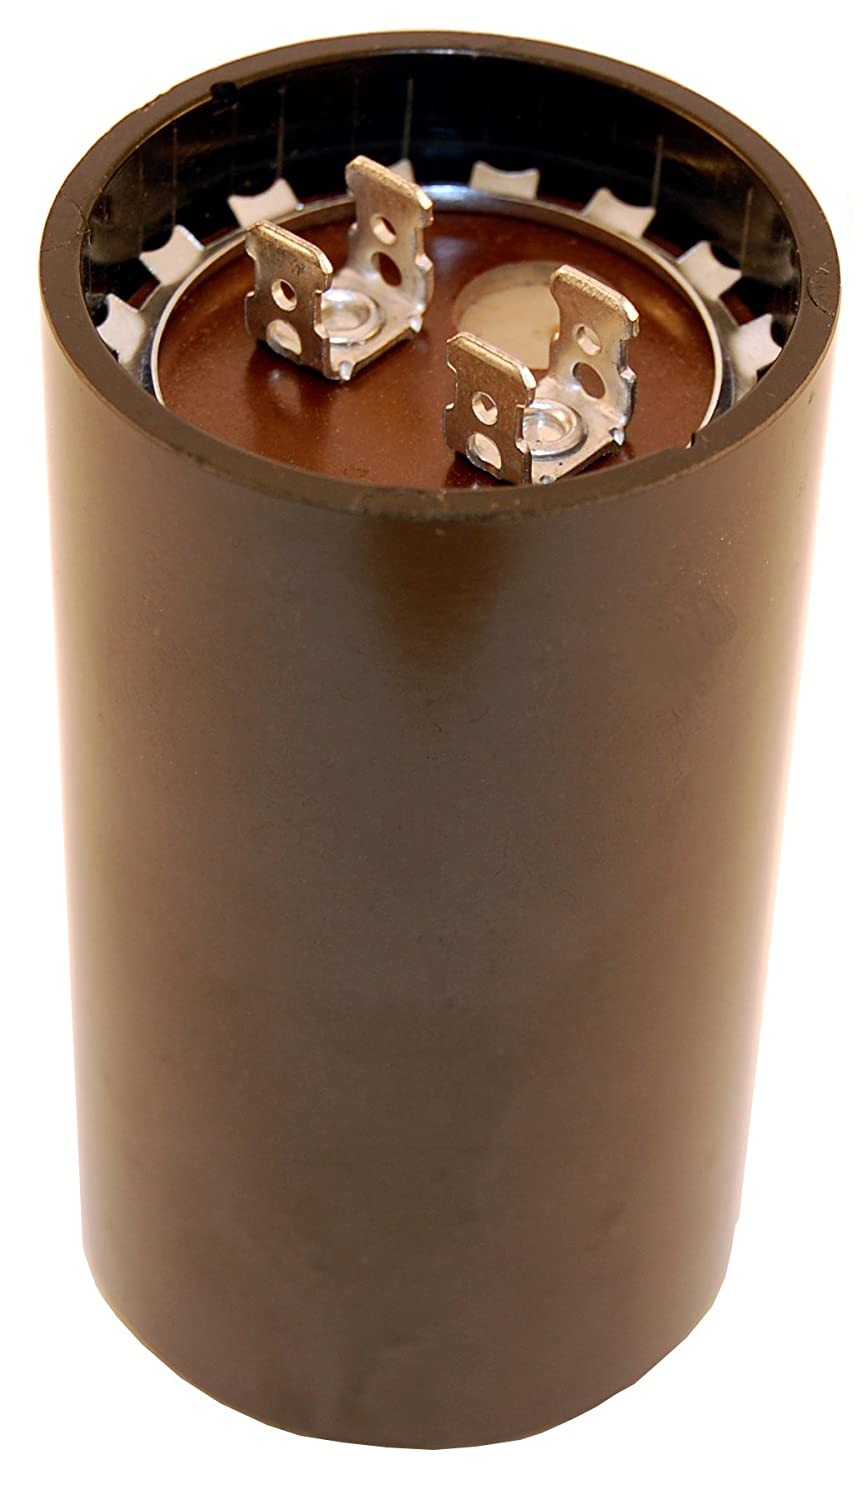 NTE Electronics MSC250V53 Series MSC Motor Start AC Electrolytic Capacitor, Two 0.250' Quick Connect Terminals, 53-64 µ F Capacitance, 220/250V Two 0.250 Quick Connect Terminals Inc.